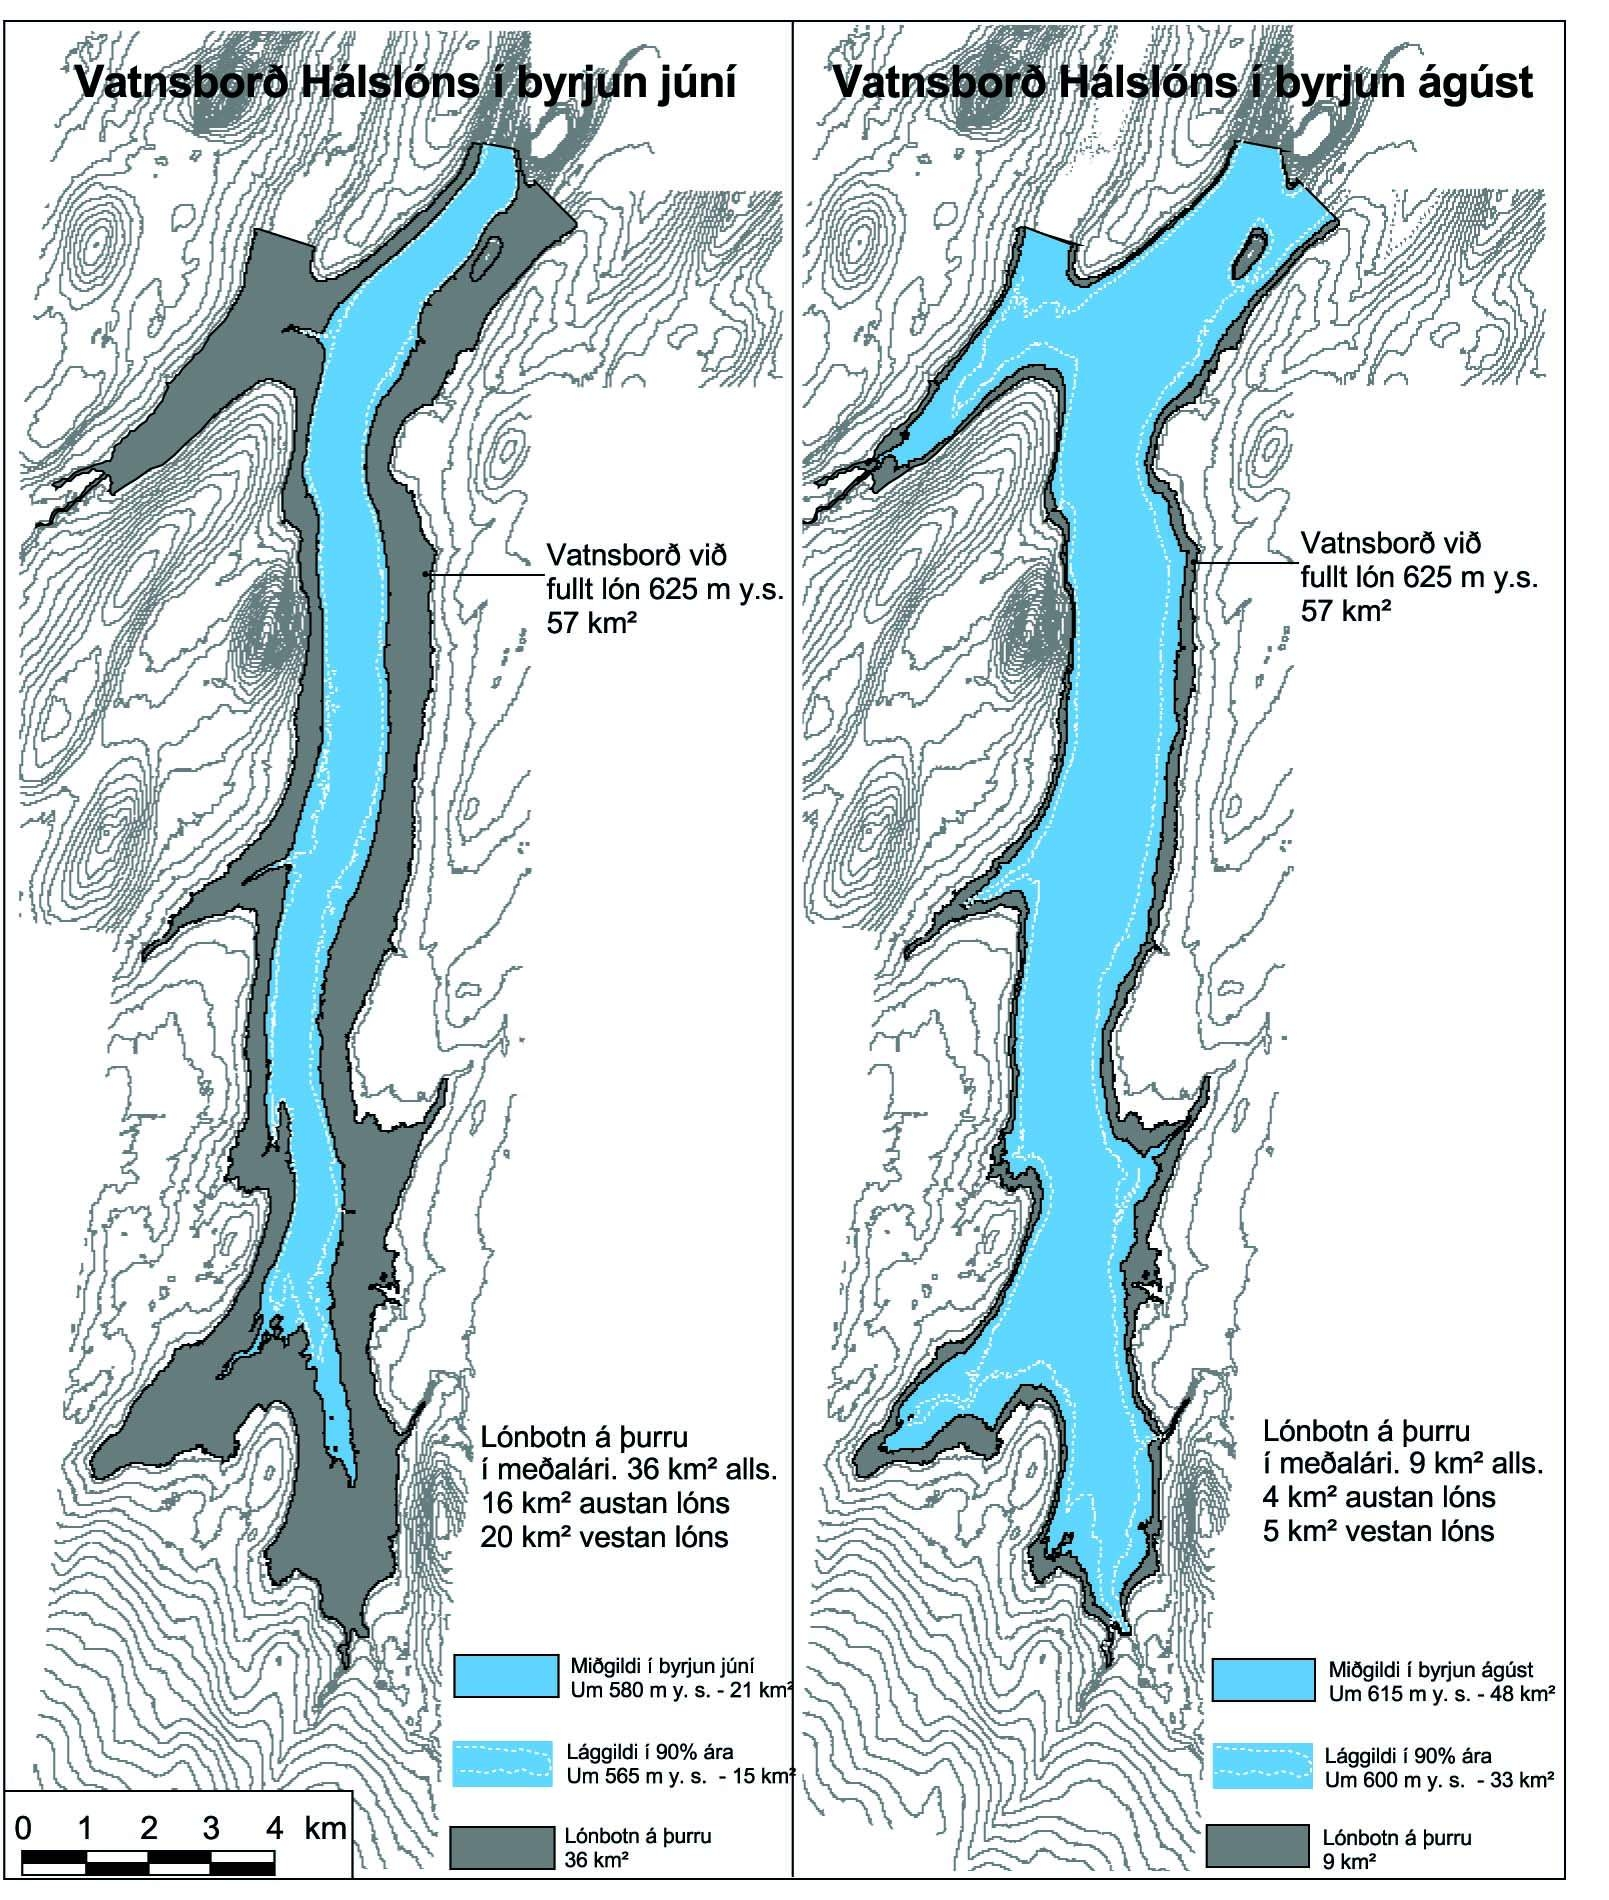 Figure 2.  The status of the reservoir in the average year at the beginning of June